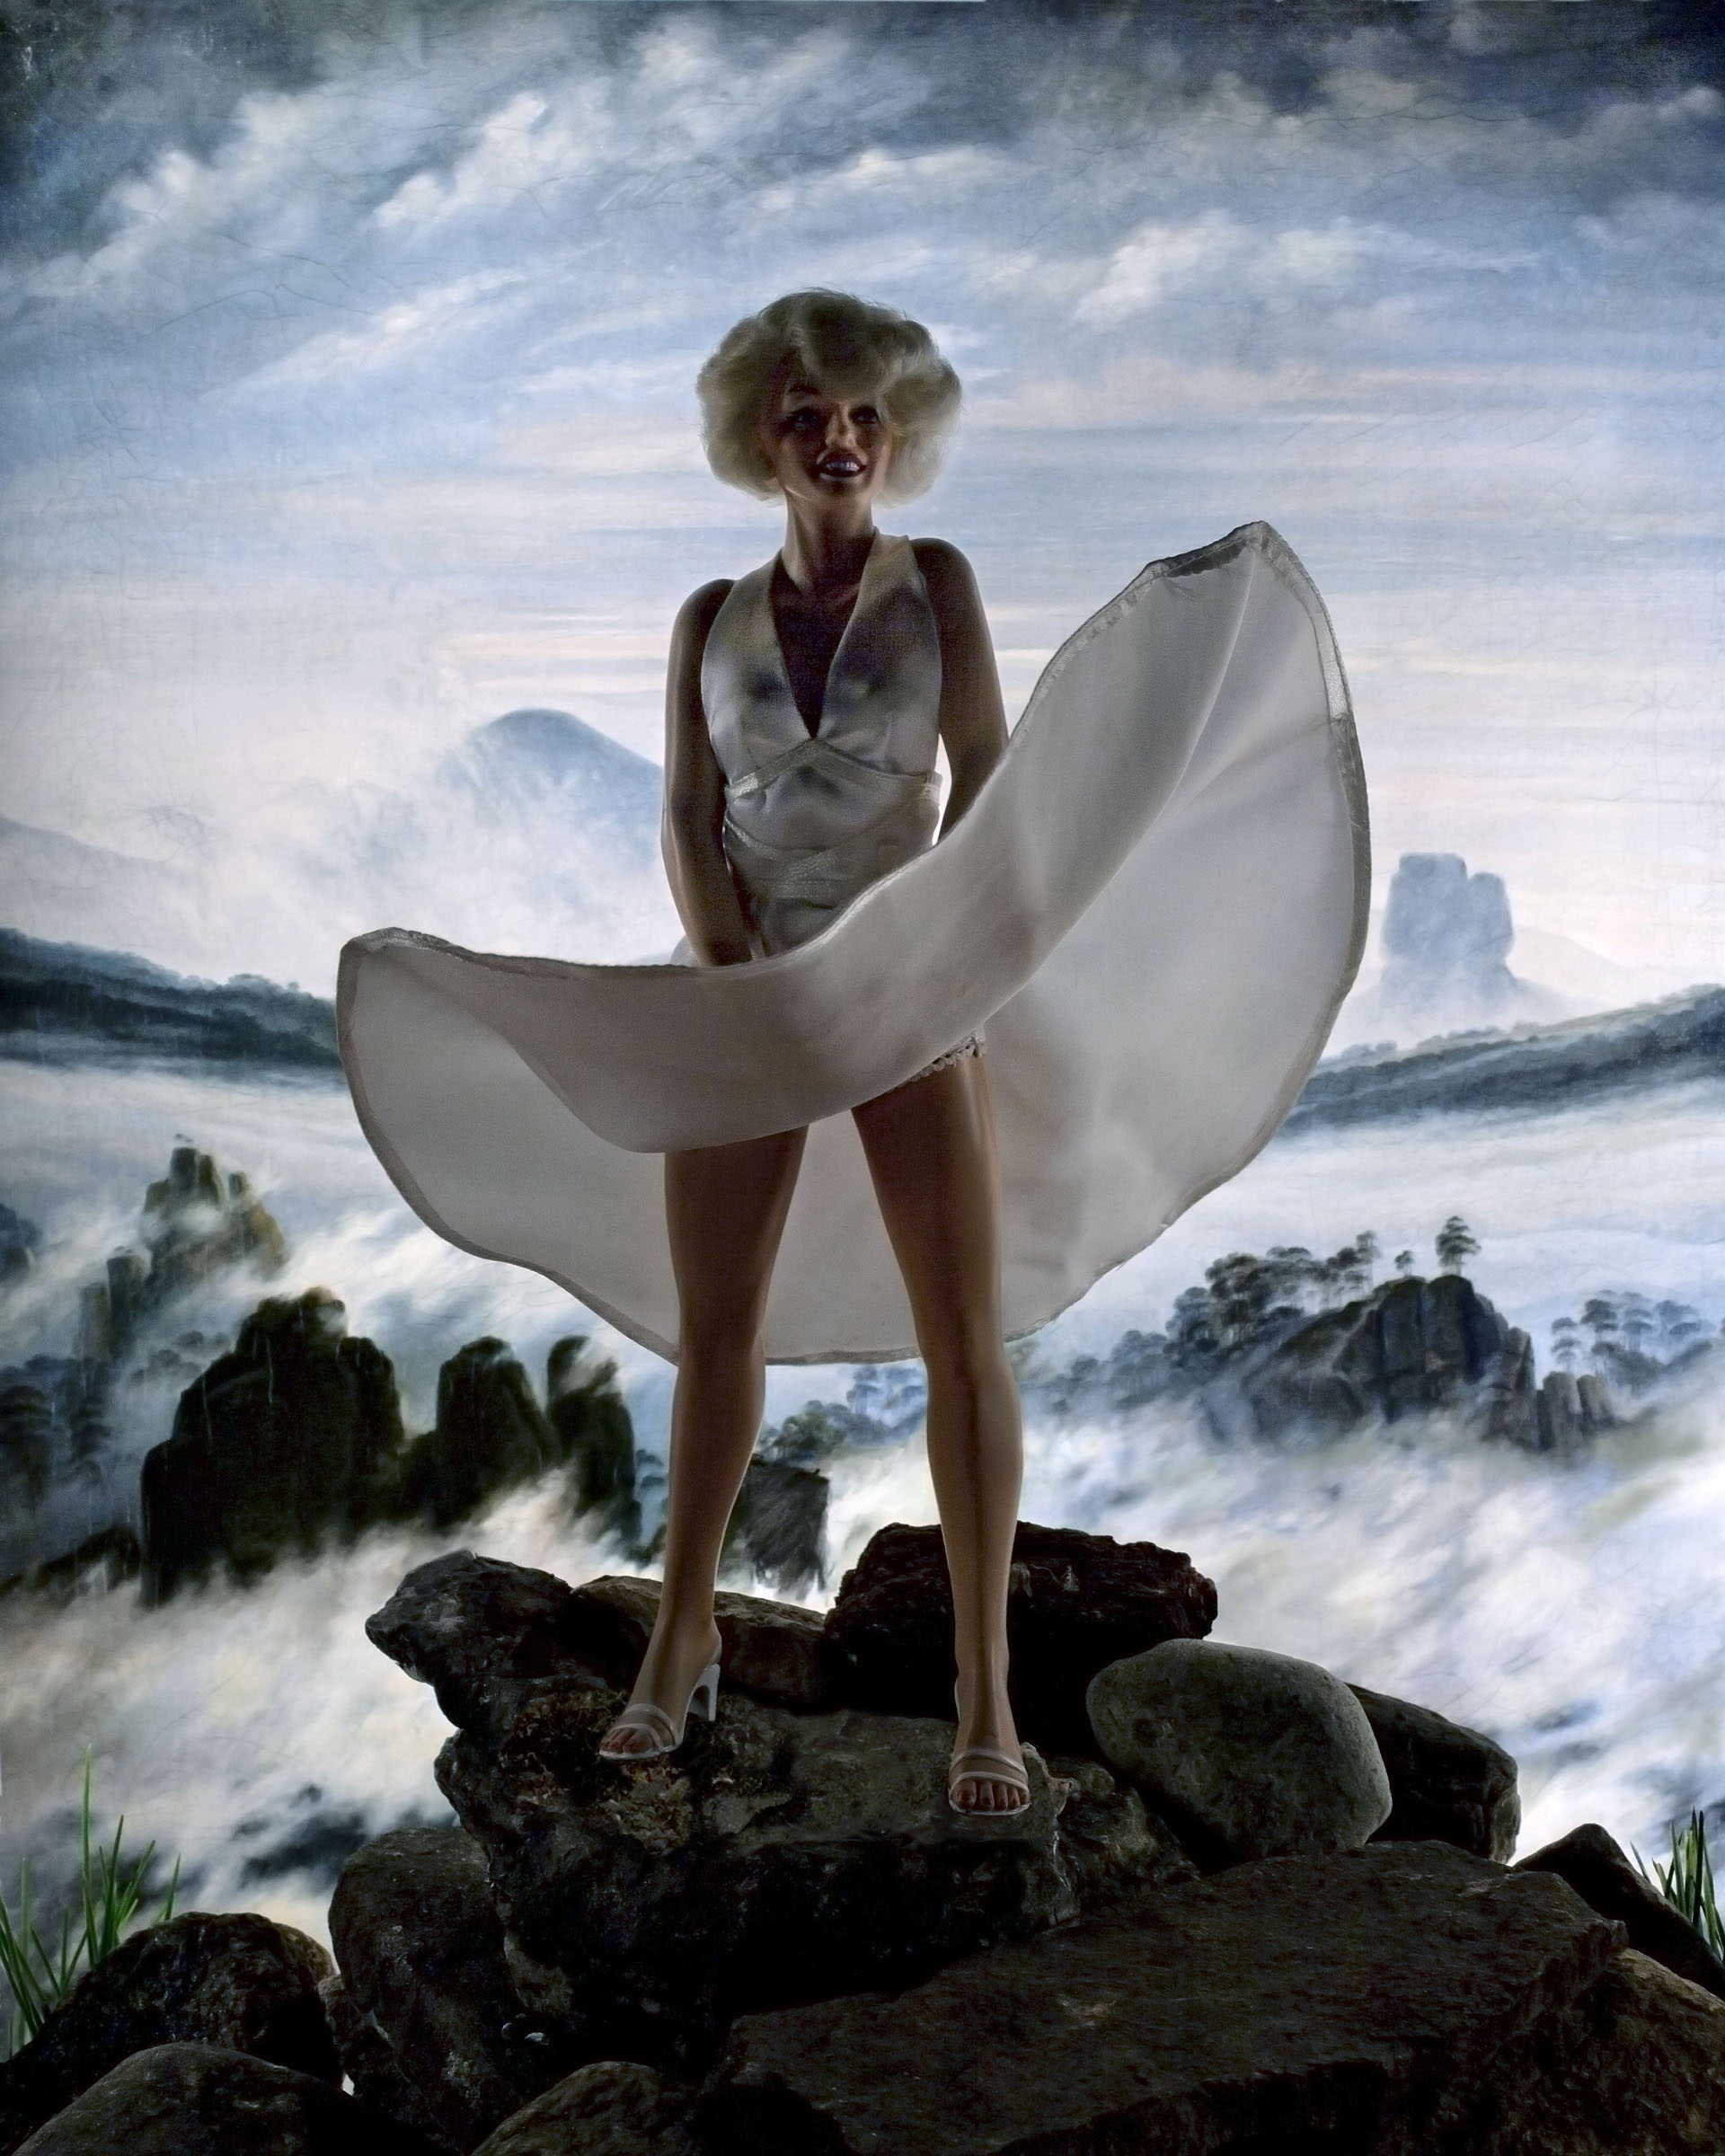 Wanderer above a Sea of Ice (Marilyn), C print, 2012. Image courtesy of Diana Thorneycroft.